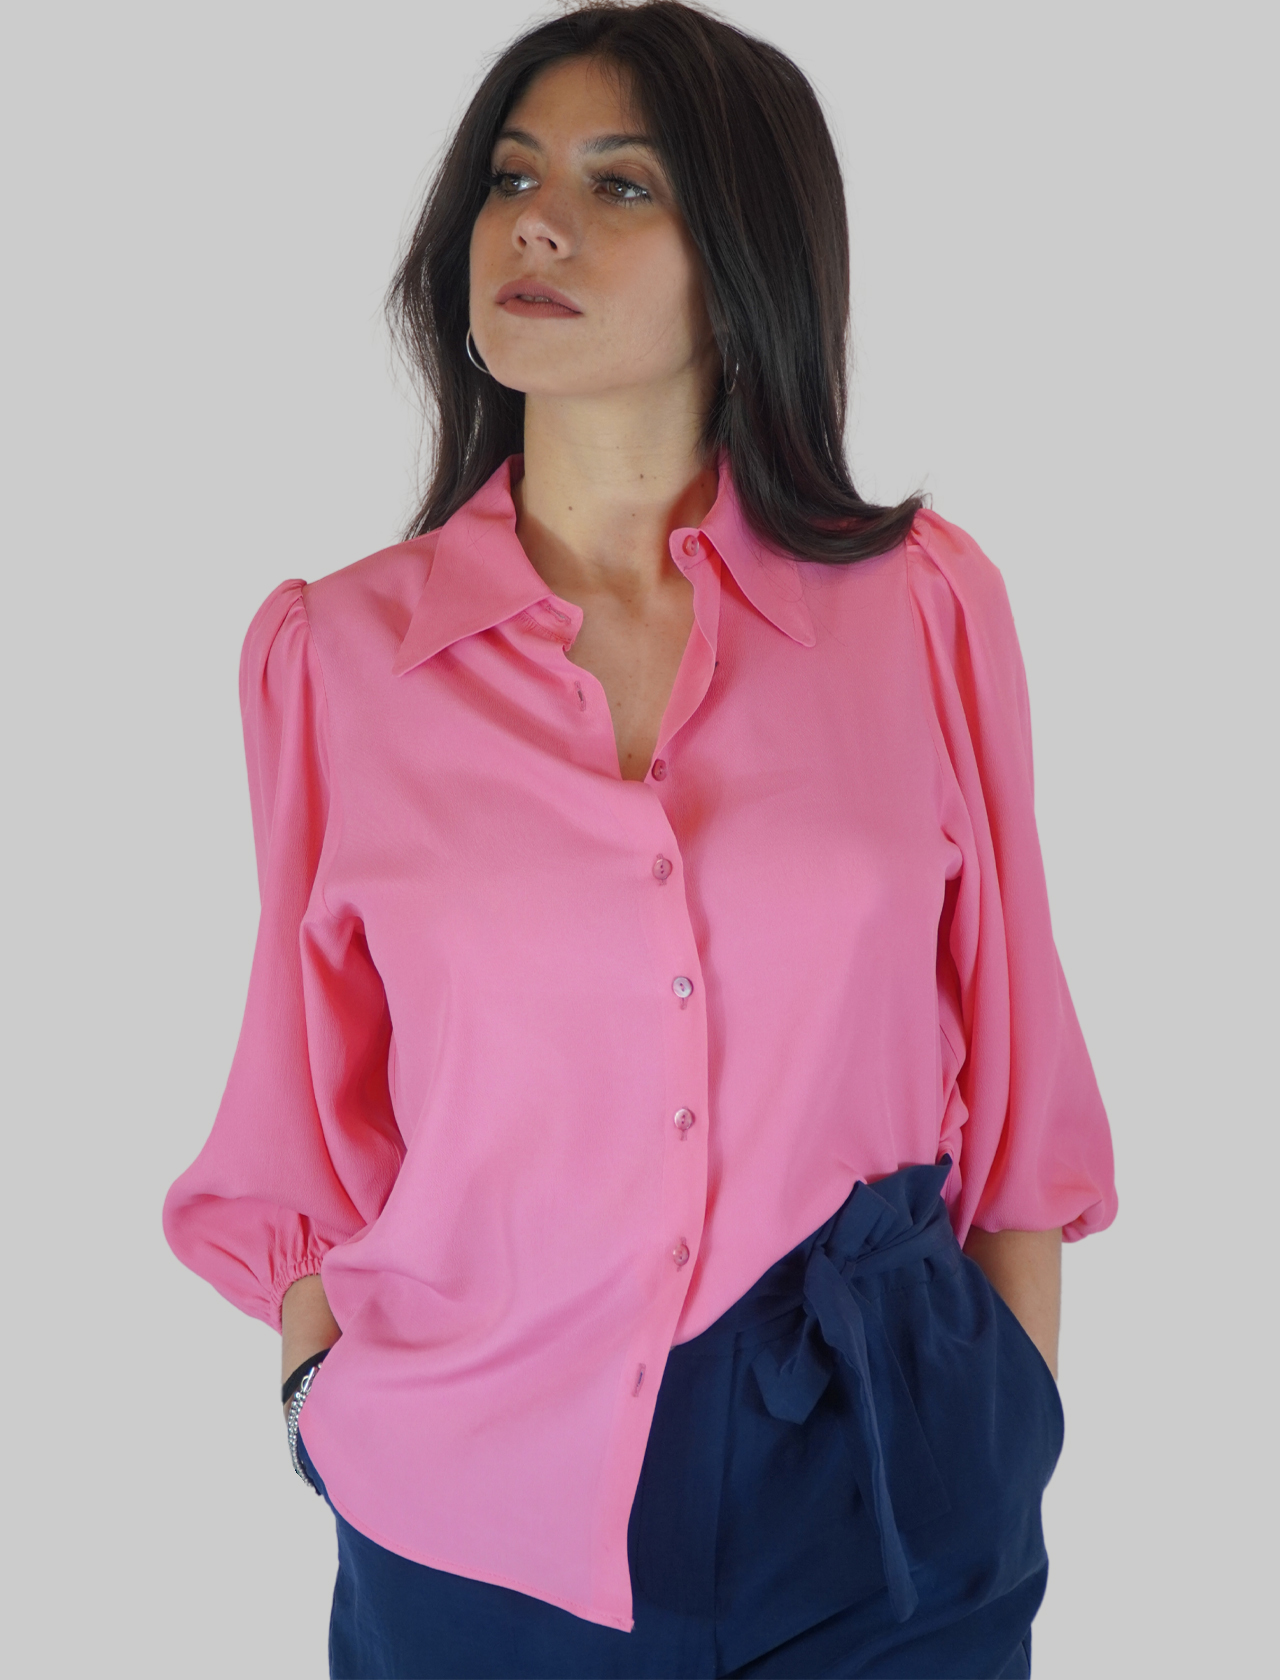 Women's Clothing Pink Silk Blend Shirt with Puff Sleeves Mercì | Shirts and tops | C305033